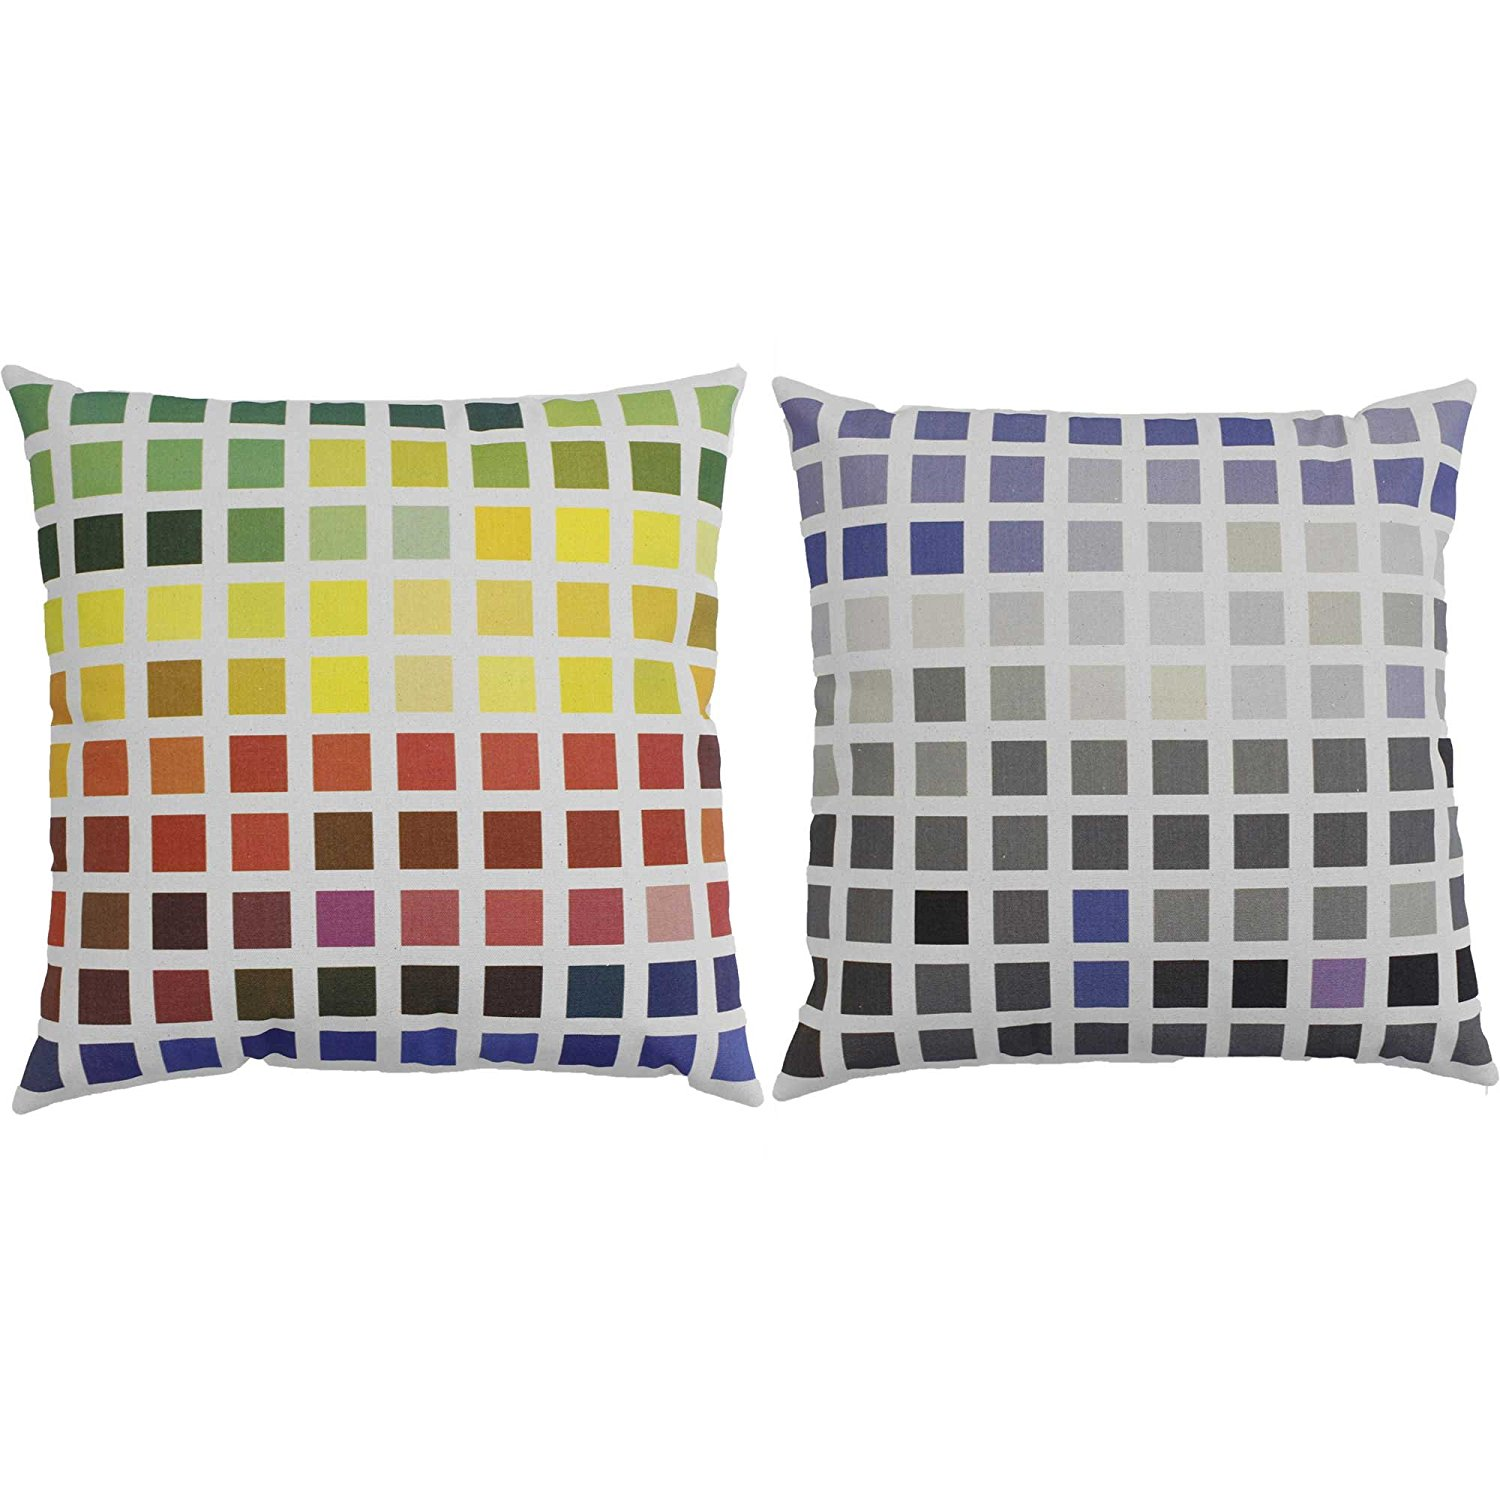 Set of 2 Color Block Squares Throw Pillows 14x14 Square White Indoor-Outdoor Cushions, One pair of RoomCraft Color Block Squares white.., By RoomCraft